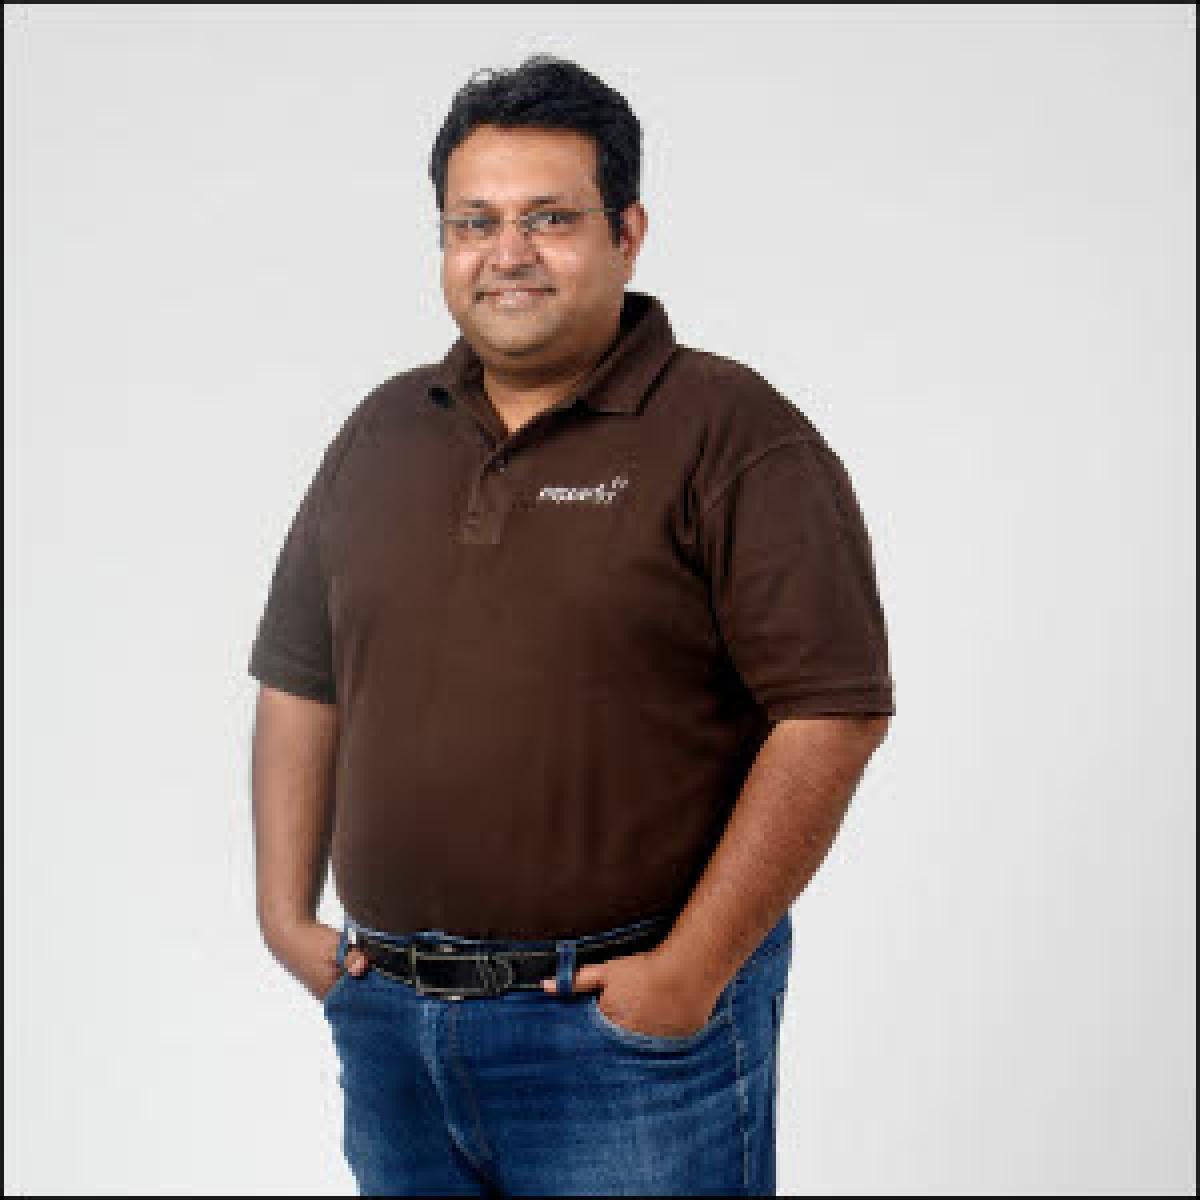 Pepperfry appoints Abhimanyu Lal as chief product officer